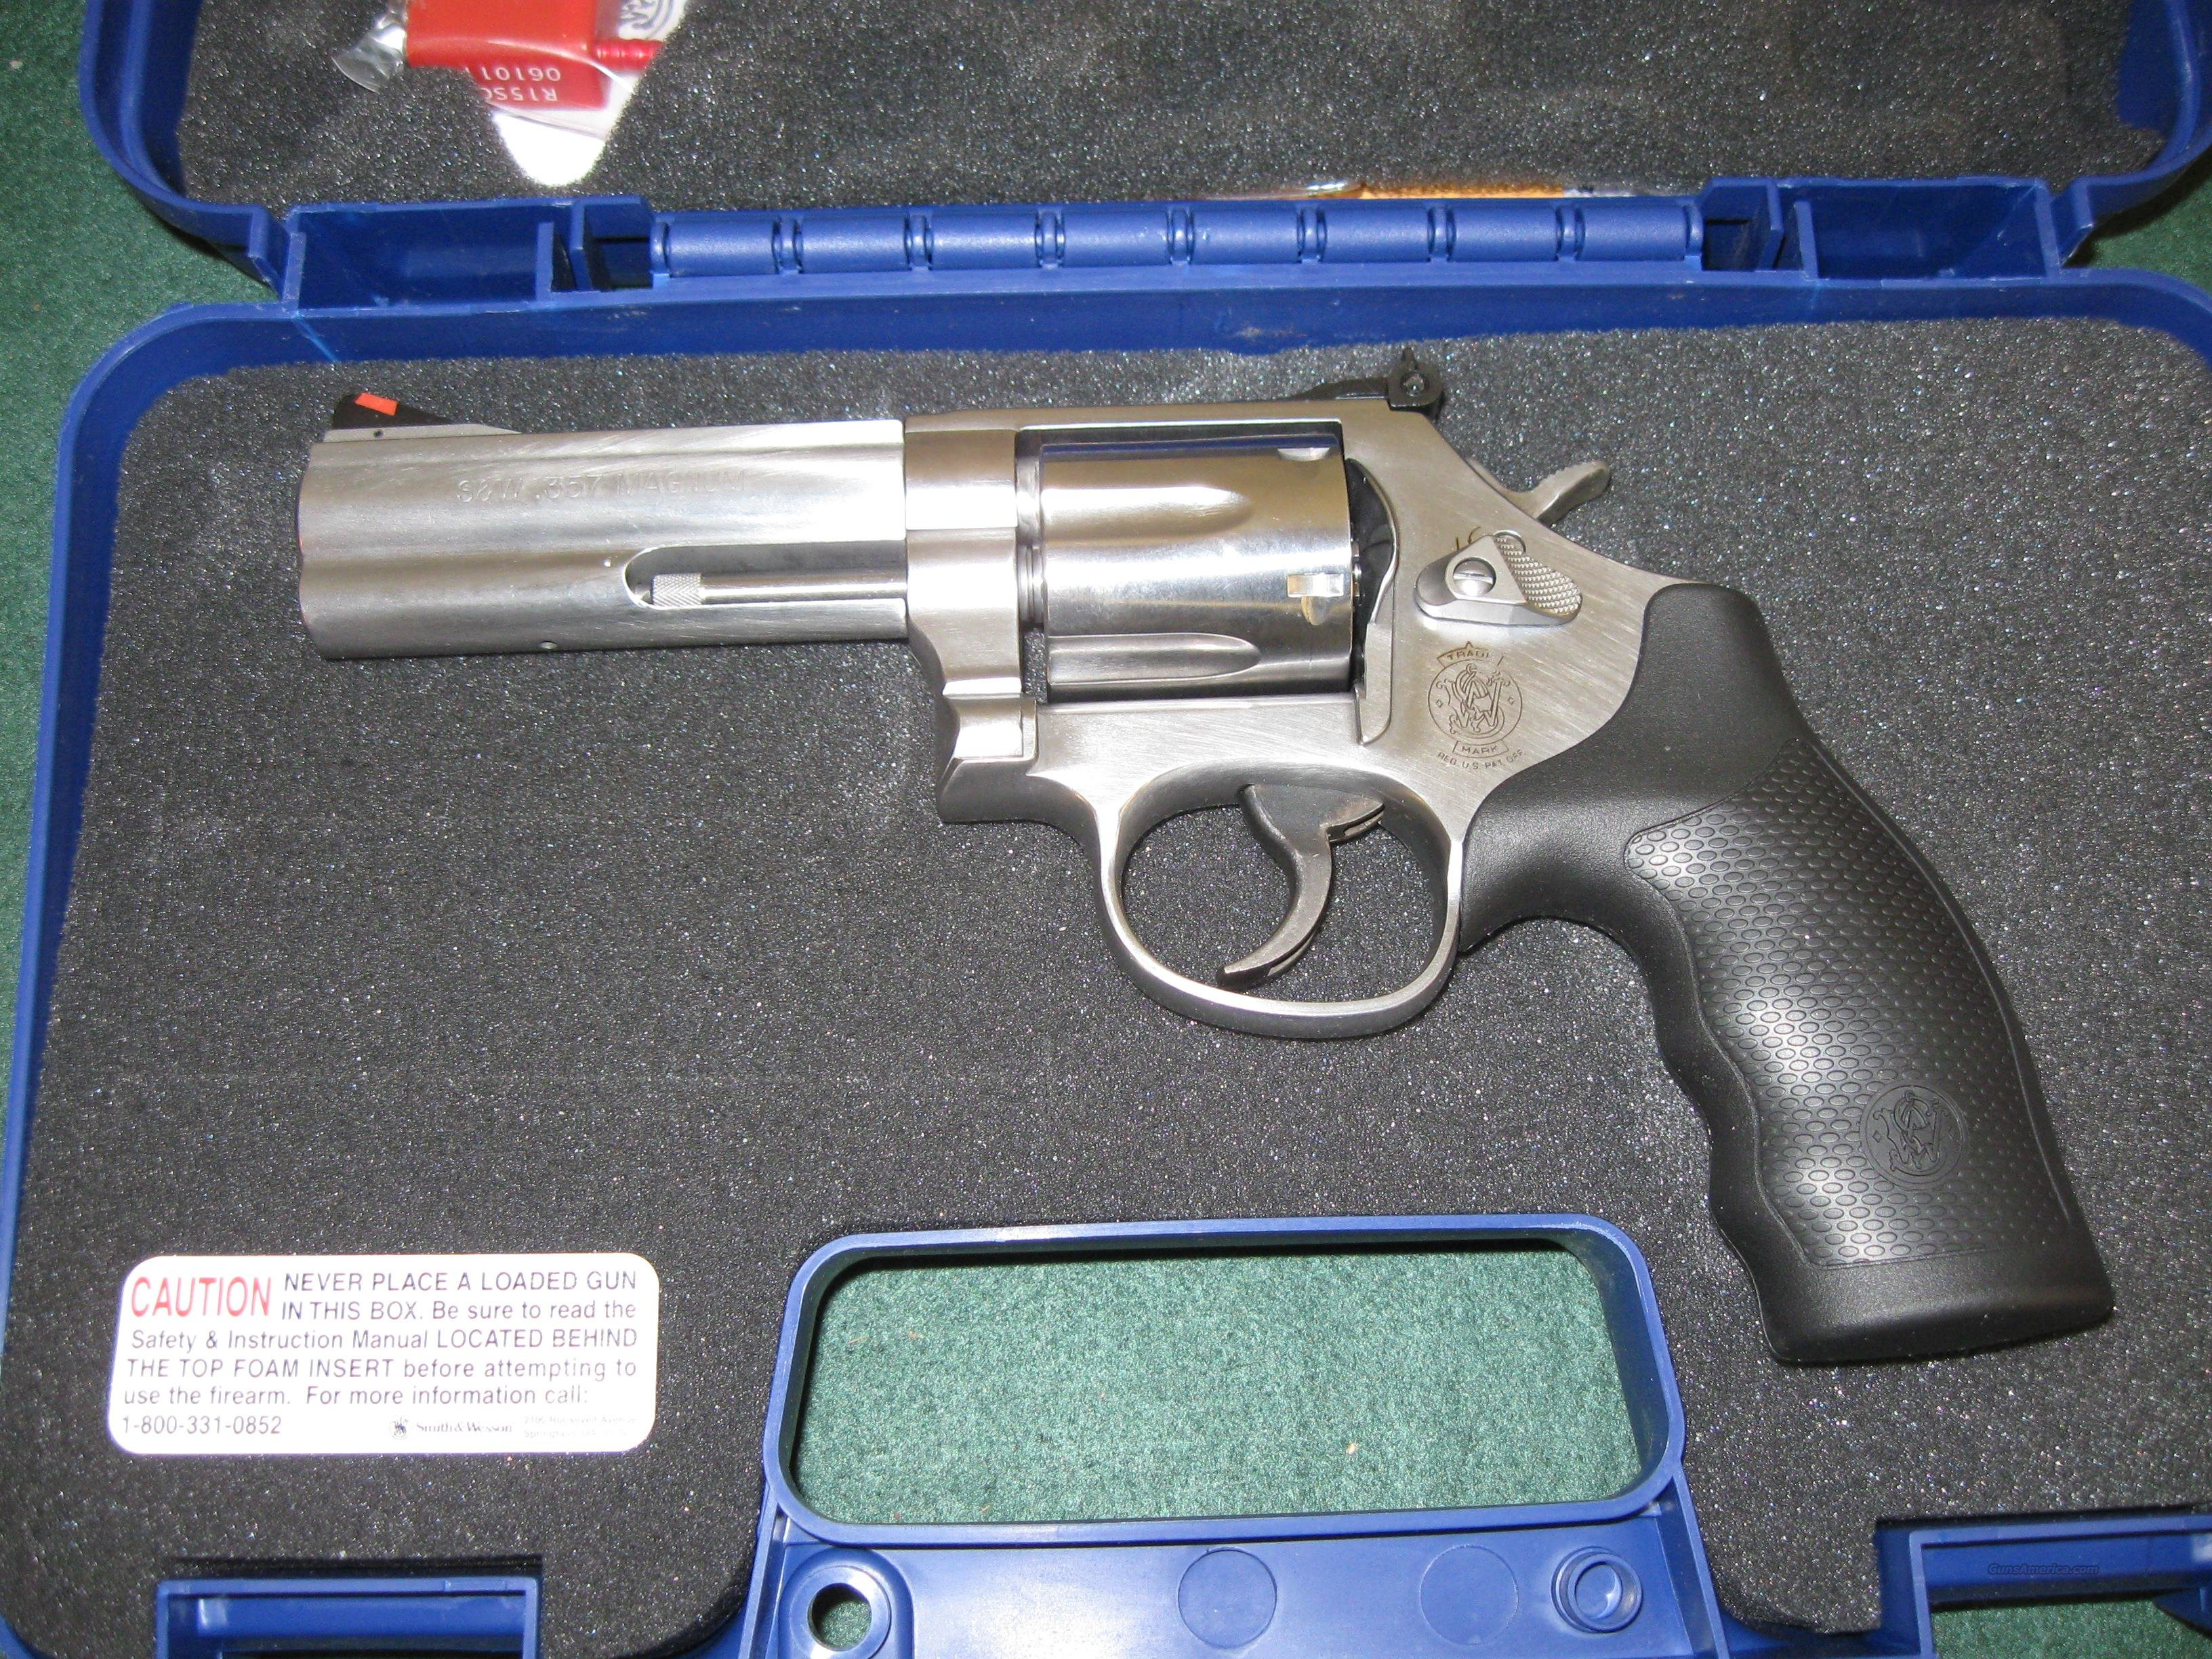 "Smith & Wesson Model 686 Revolver 164222, 357 Remington Mag, 4"", Rubber Grip, Stainless Finish, 6 Rd, Red Ramp, White Outline Sights  Guns > Pistols > Smith & Wesson Revolvers > Full Frame Revolver"